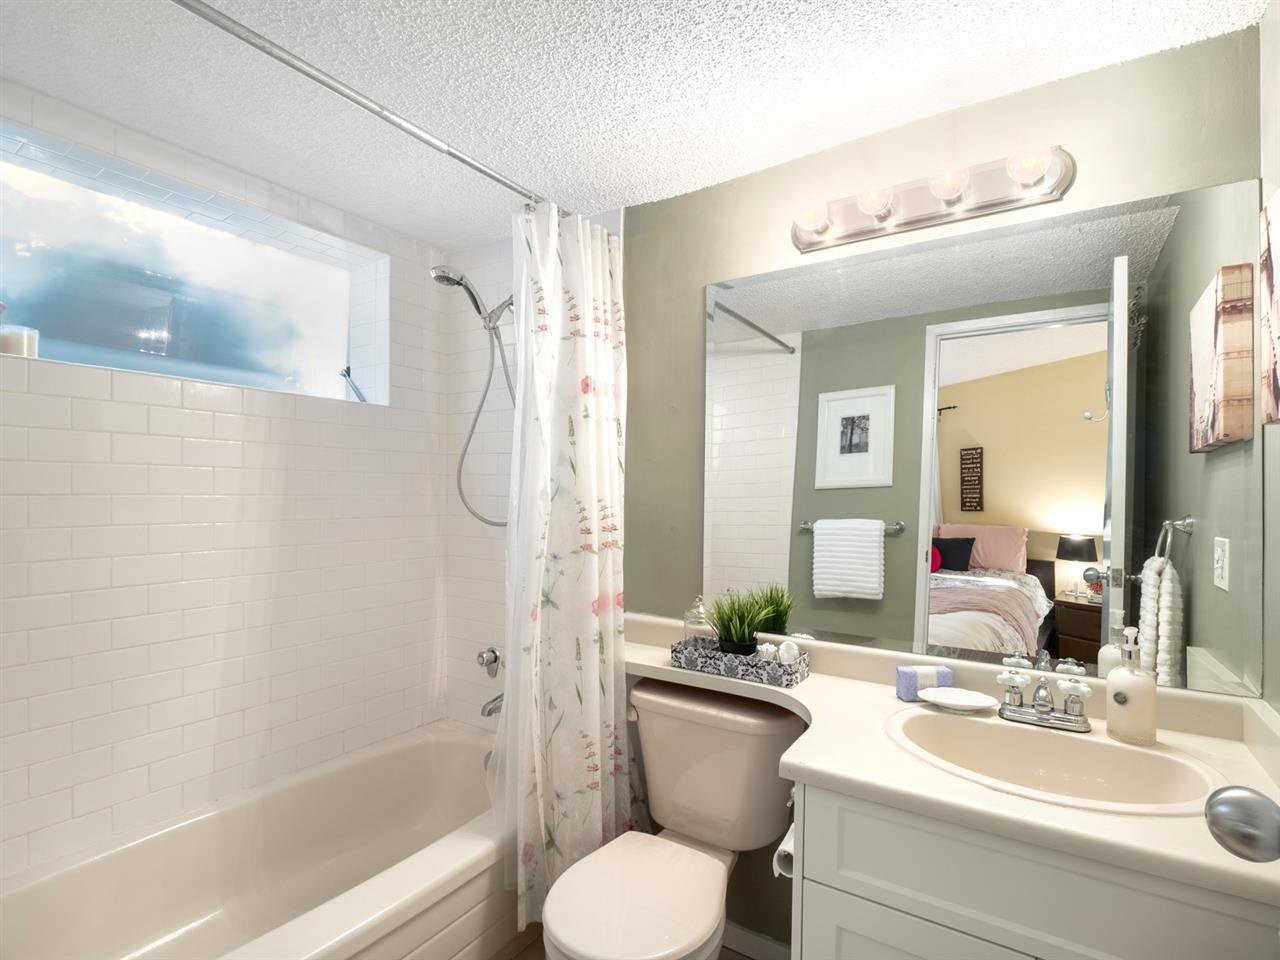 Photo 10: Photos: 101 8645 OSLER Street in Vancouver: Marpole Condo for sale (Vancouver West)  : MLS®# R2311470